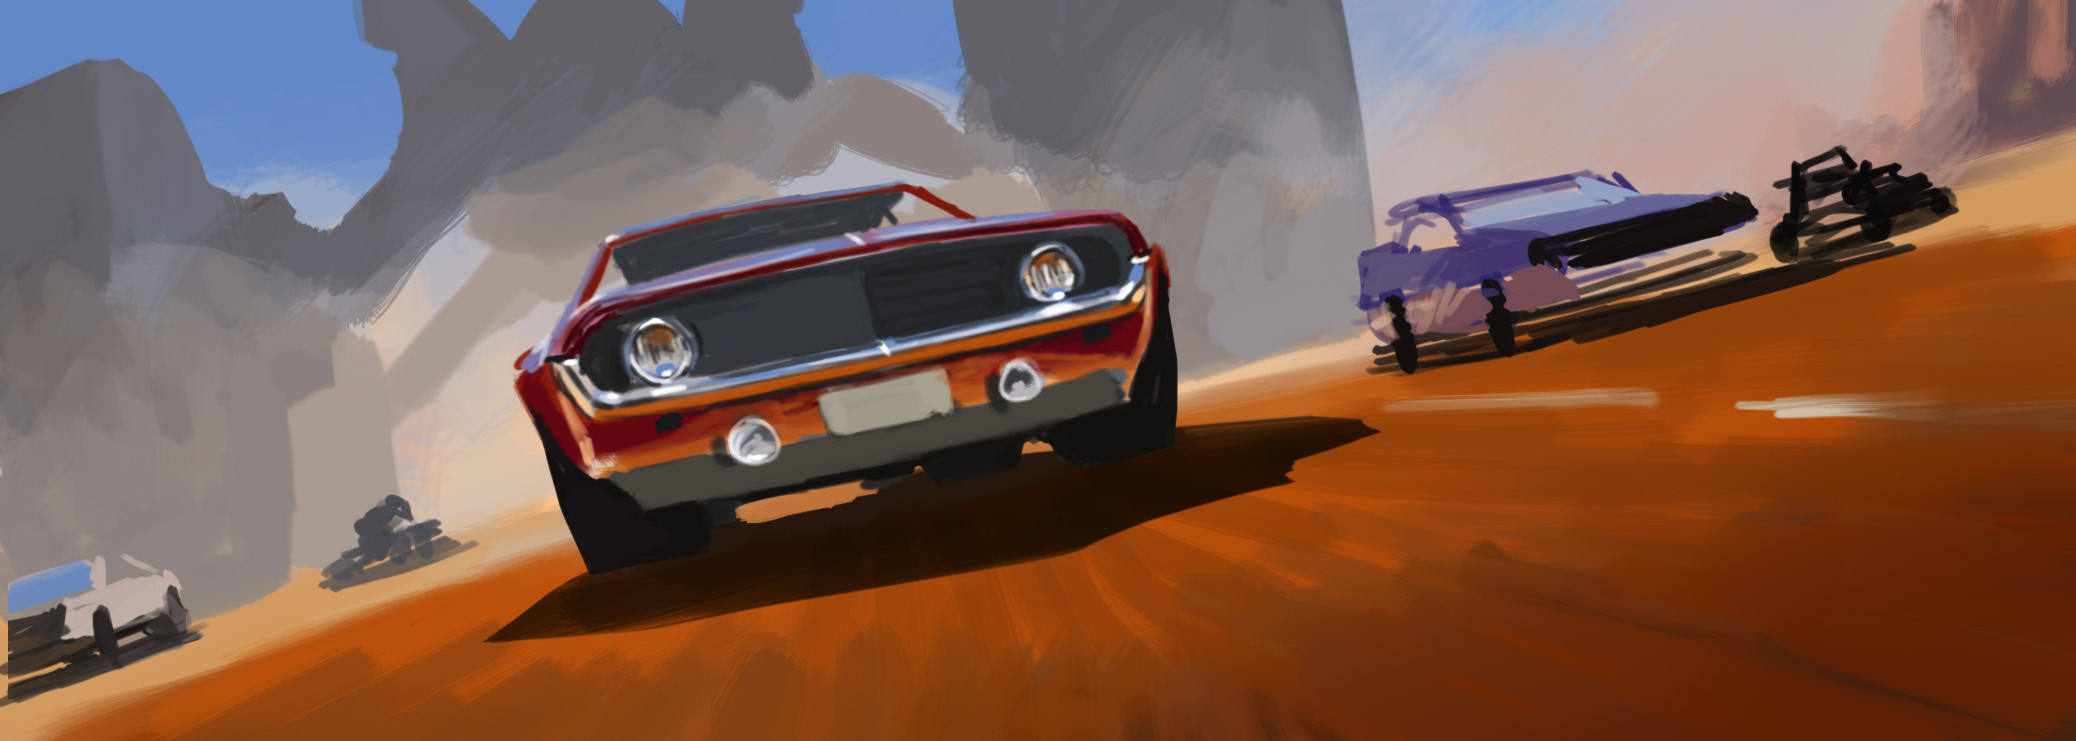 Initial color rough to establish mood and perspective. I ultimately decided the main car needed to fill more of the frame in fgd.